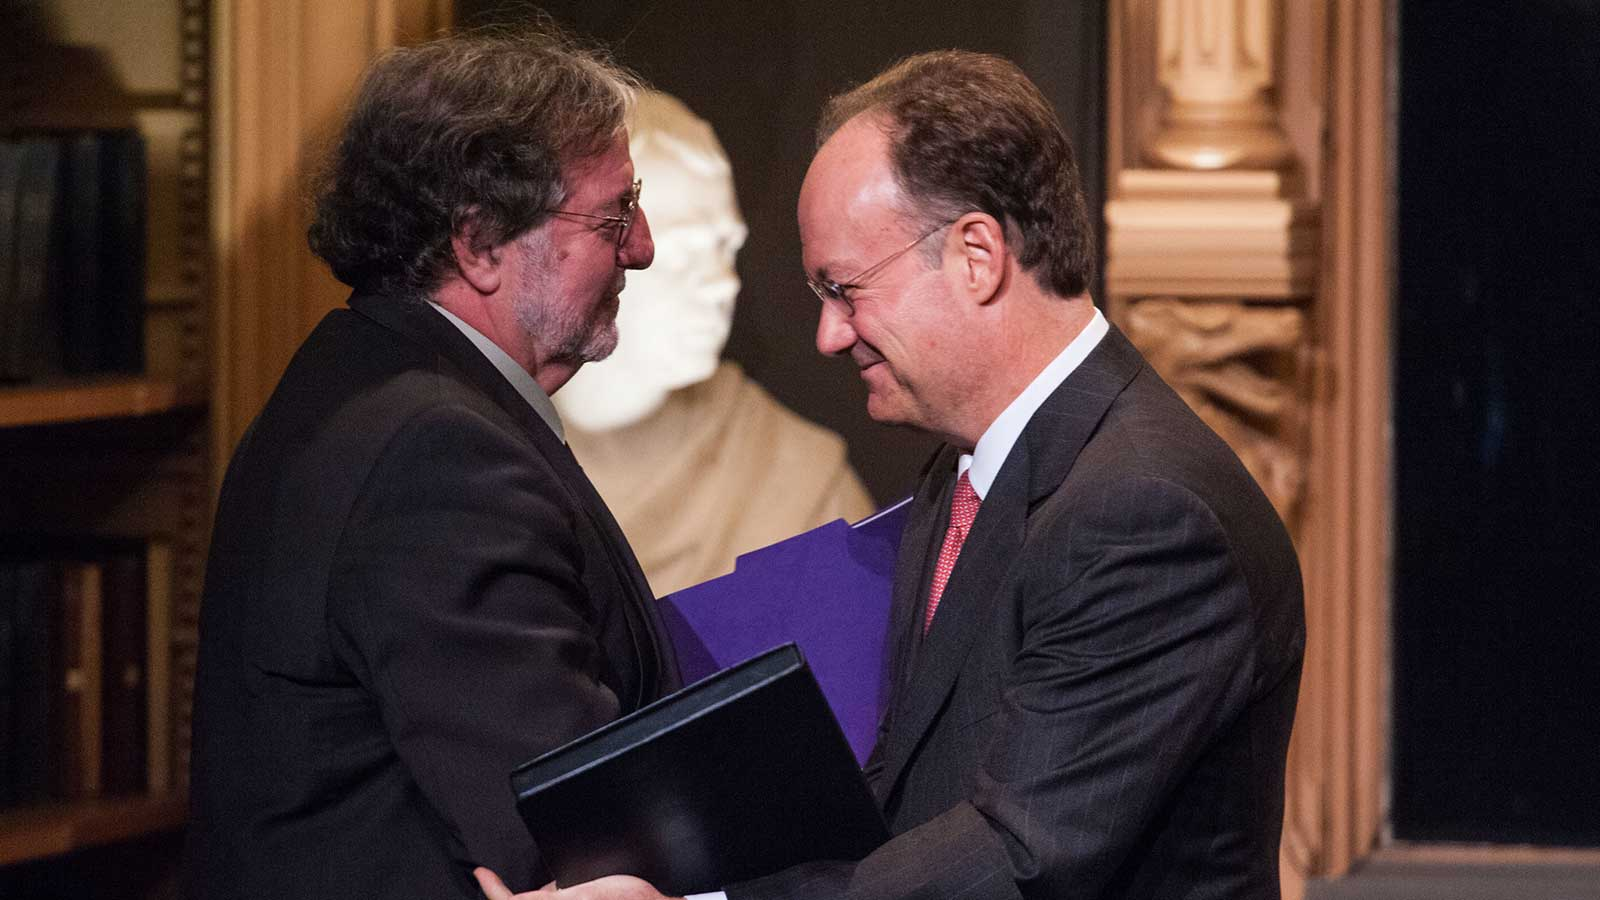 President John J. DeGioia shakes hands with José Casanova after the 2012 Berkley Center Lecture.